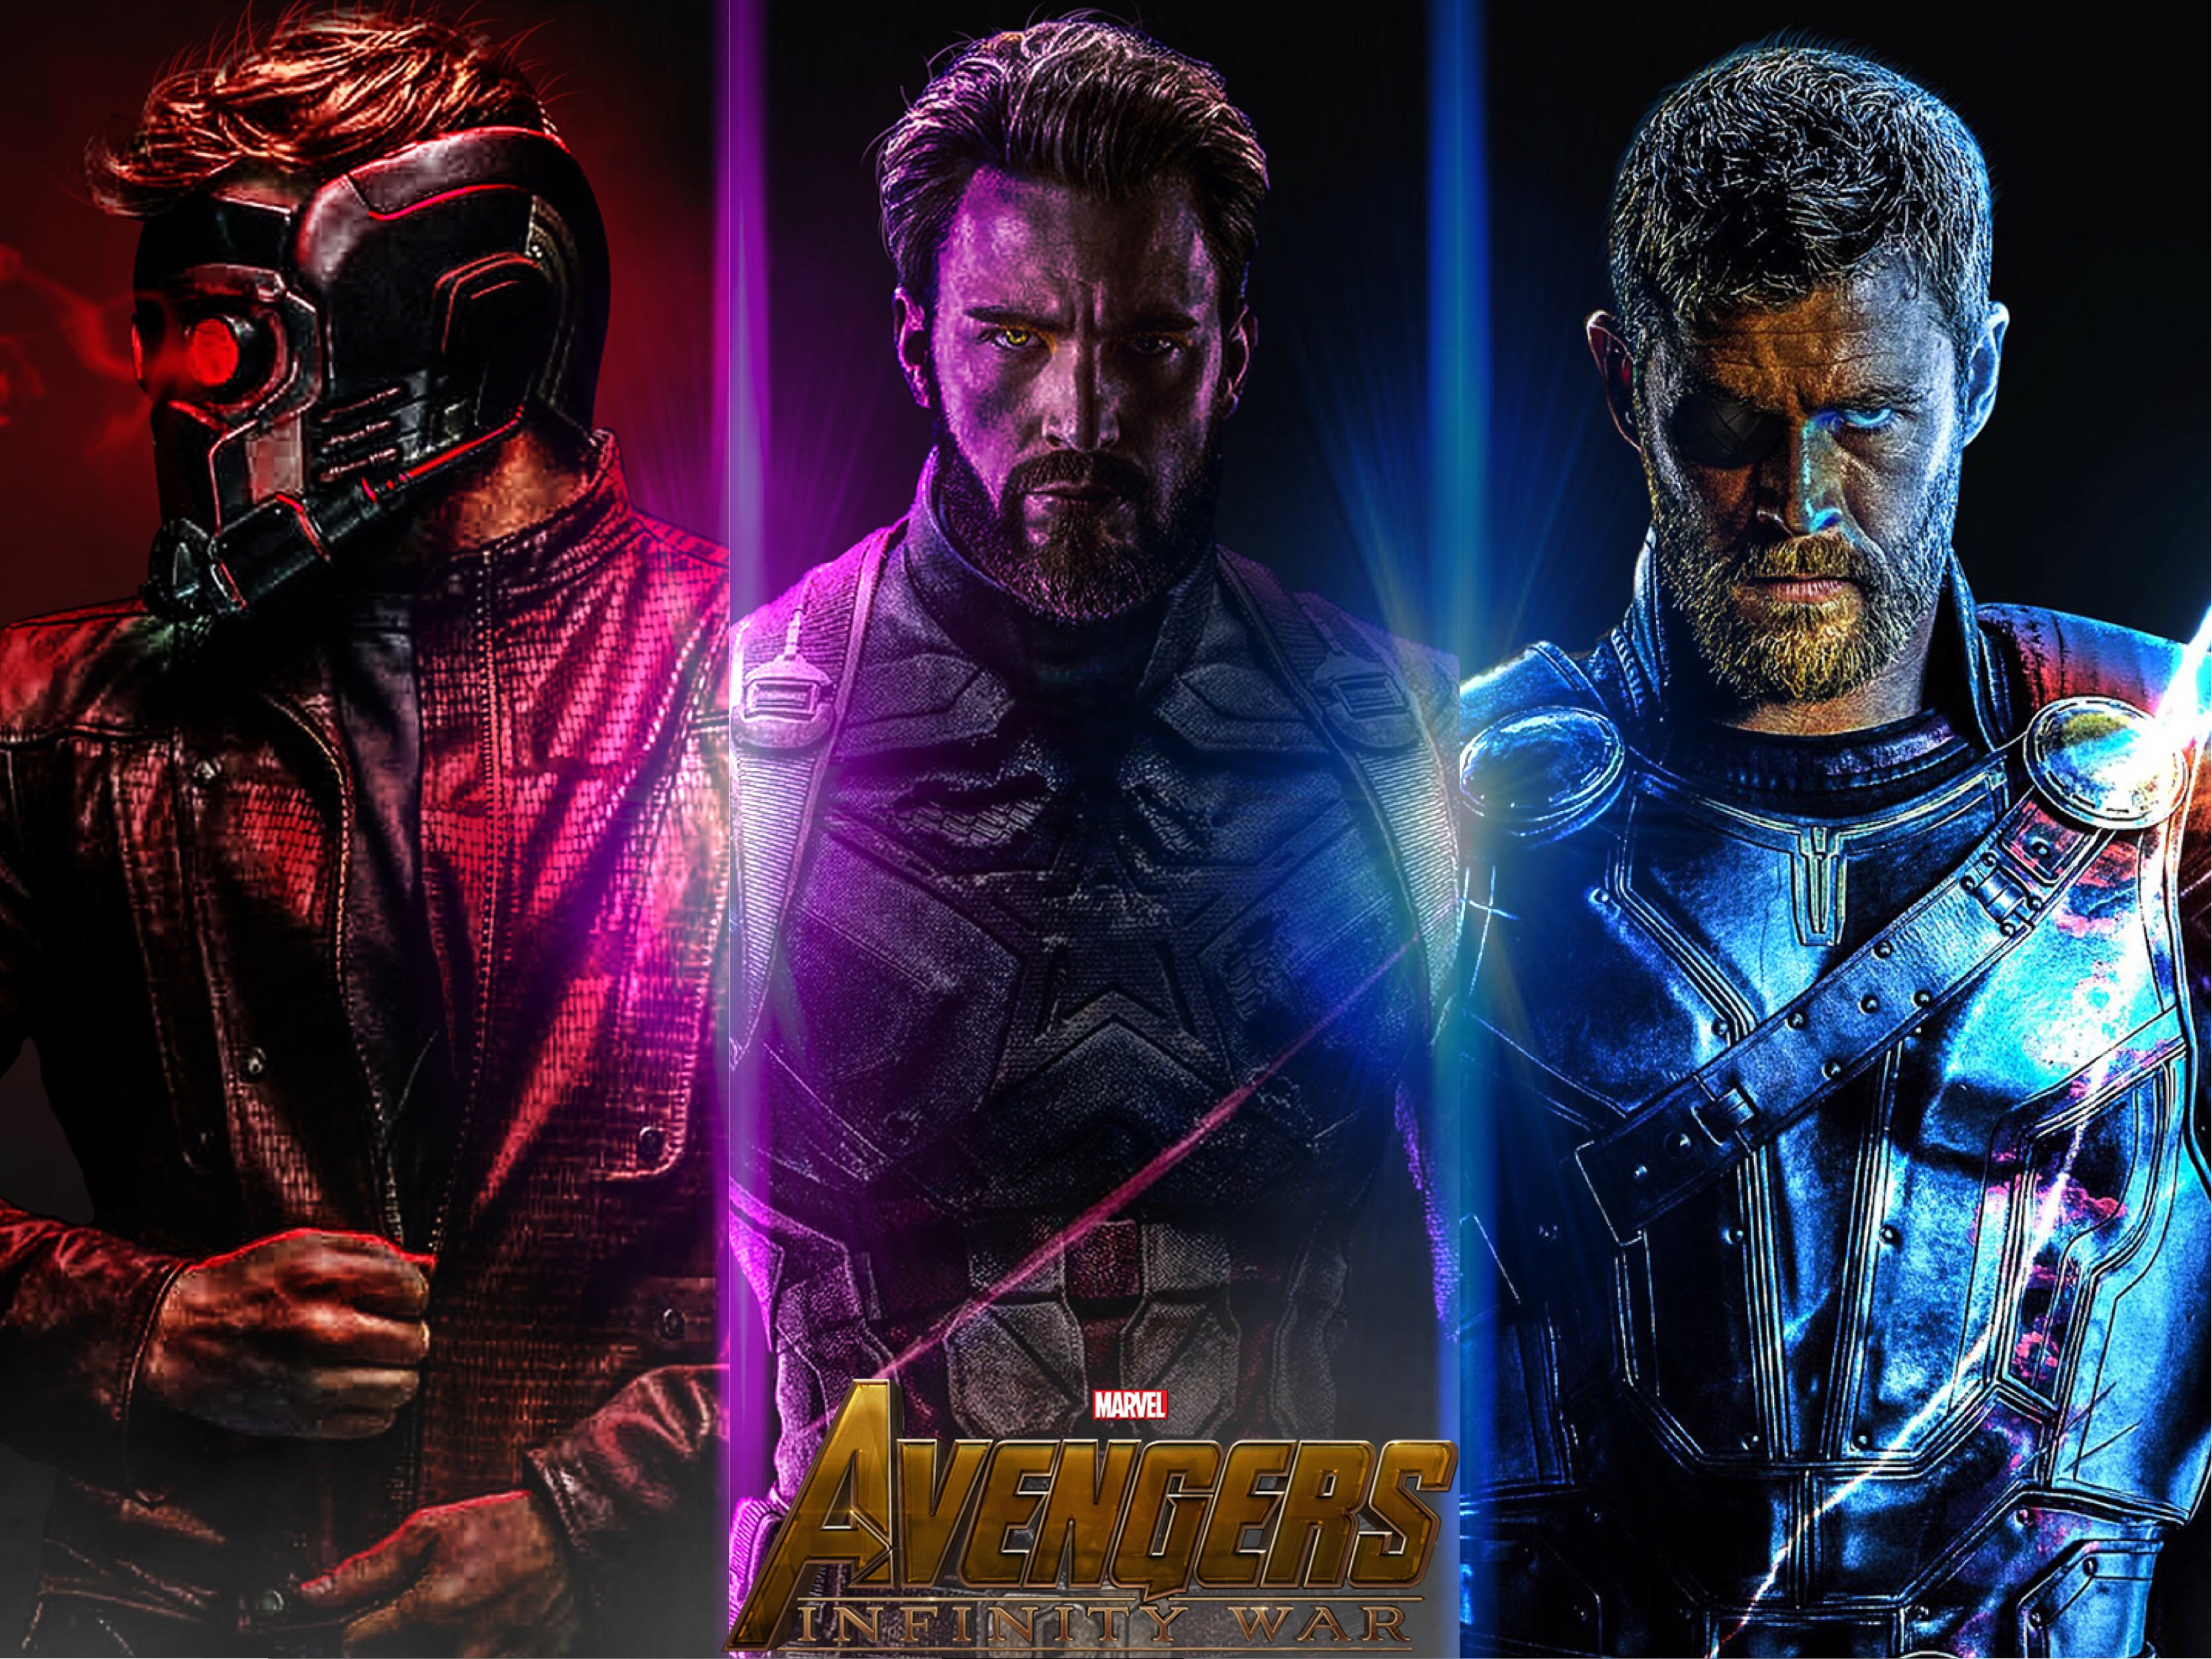 HD Wallpaper Avengers IW, Captain America, Star Lord, Thor